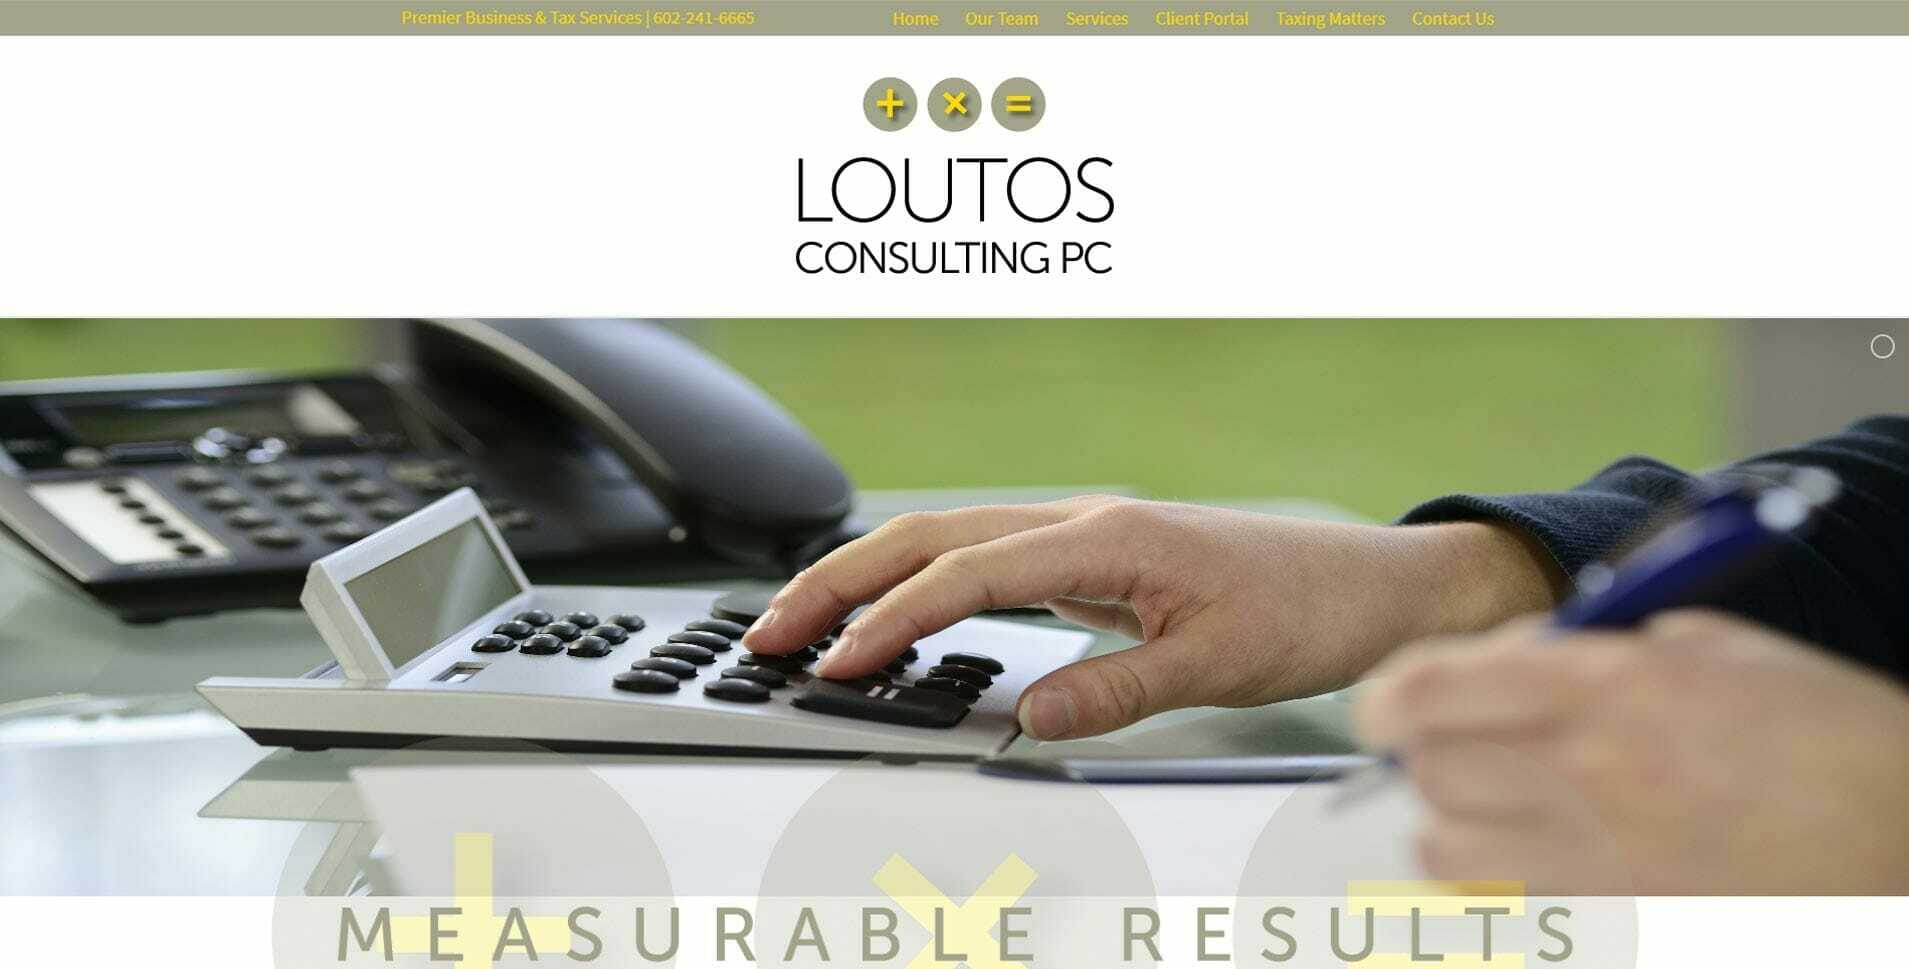 Loutos Consulting PC